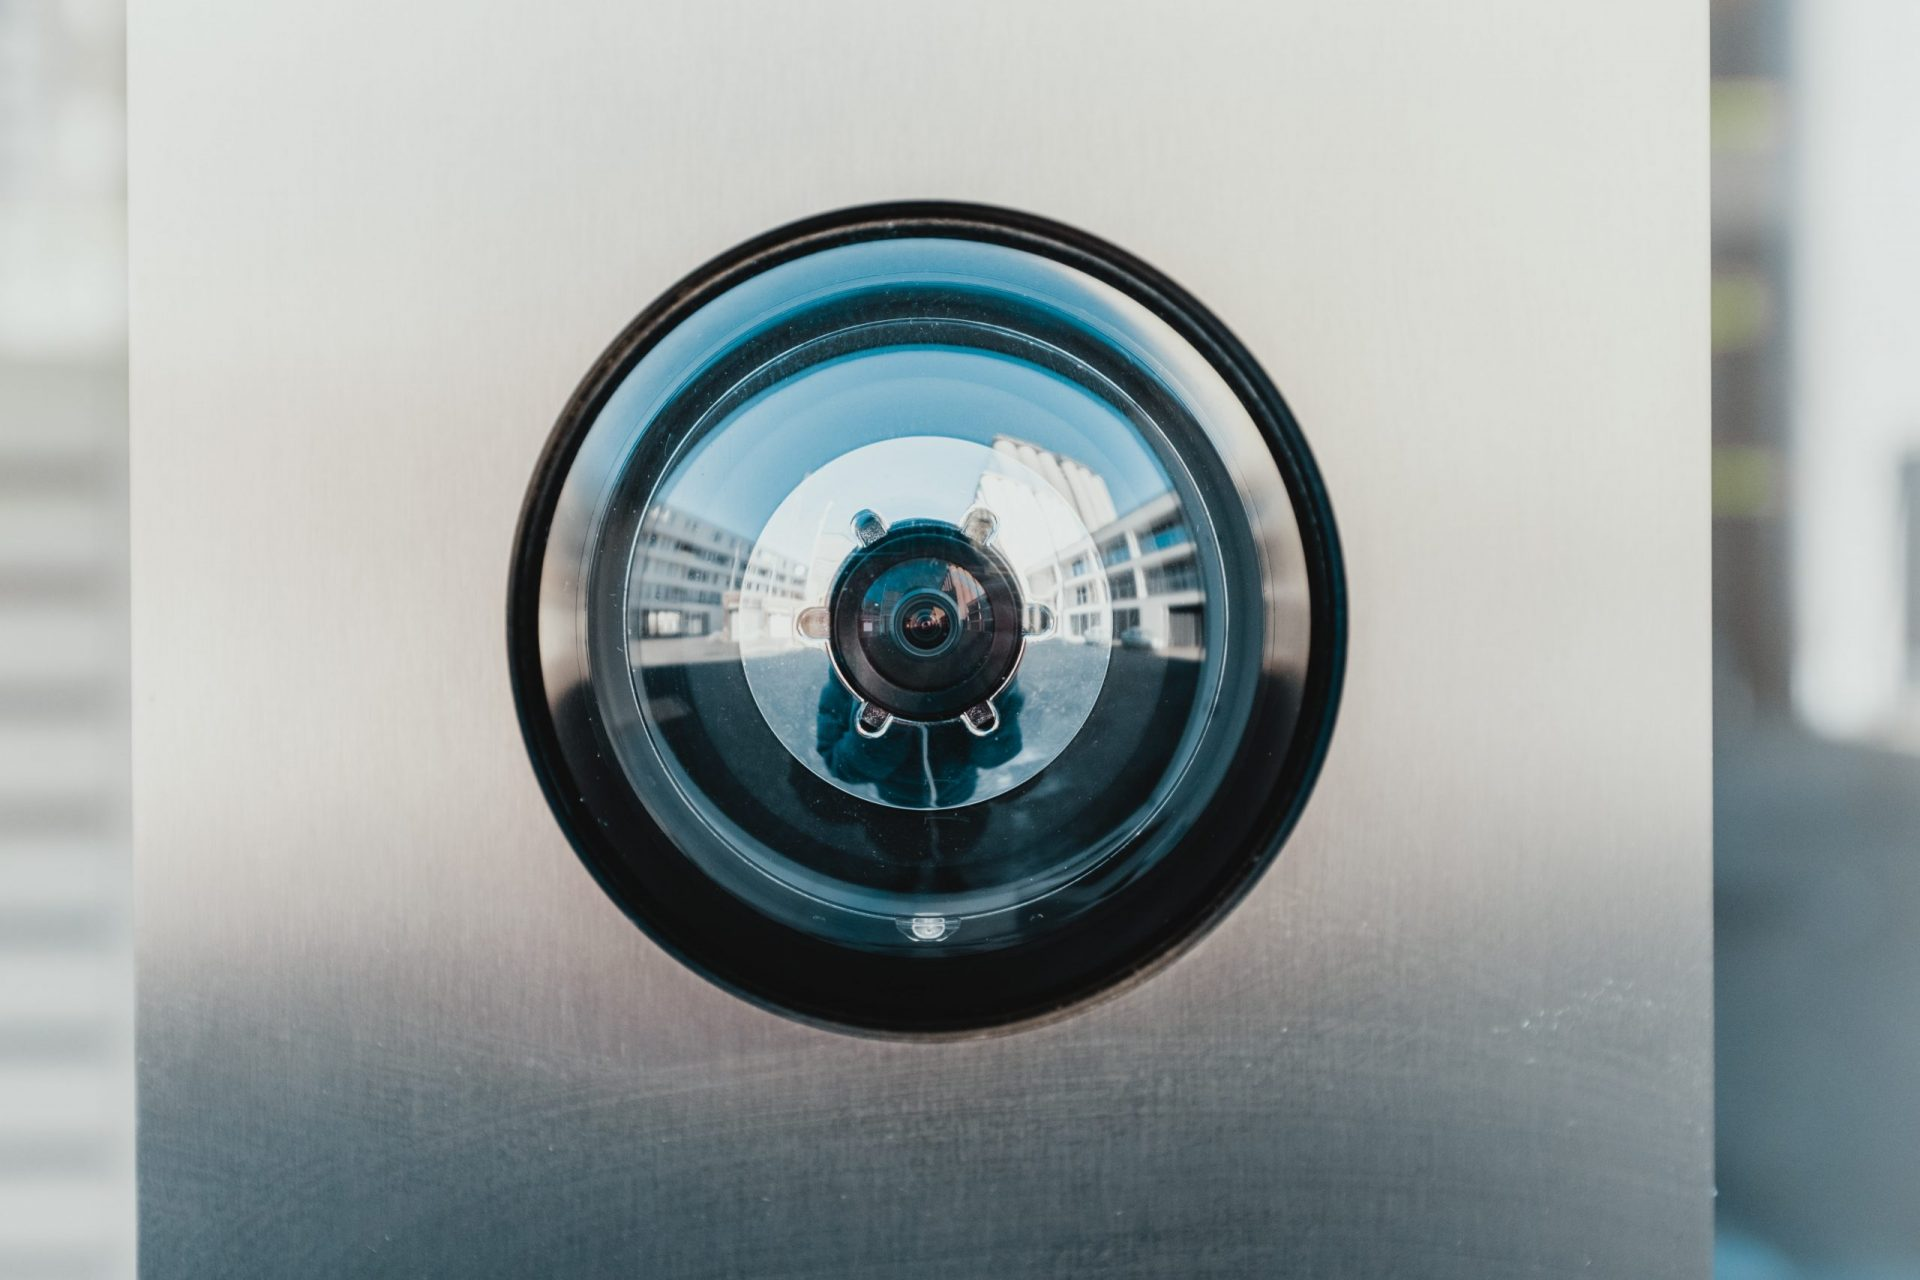 Best Security Cameras for a Condo (Review for 2020)